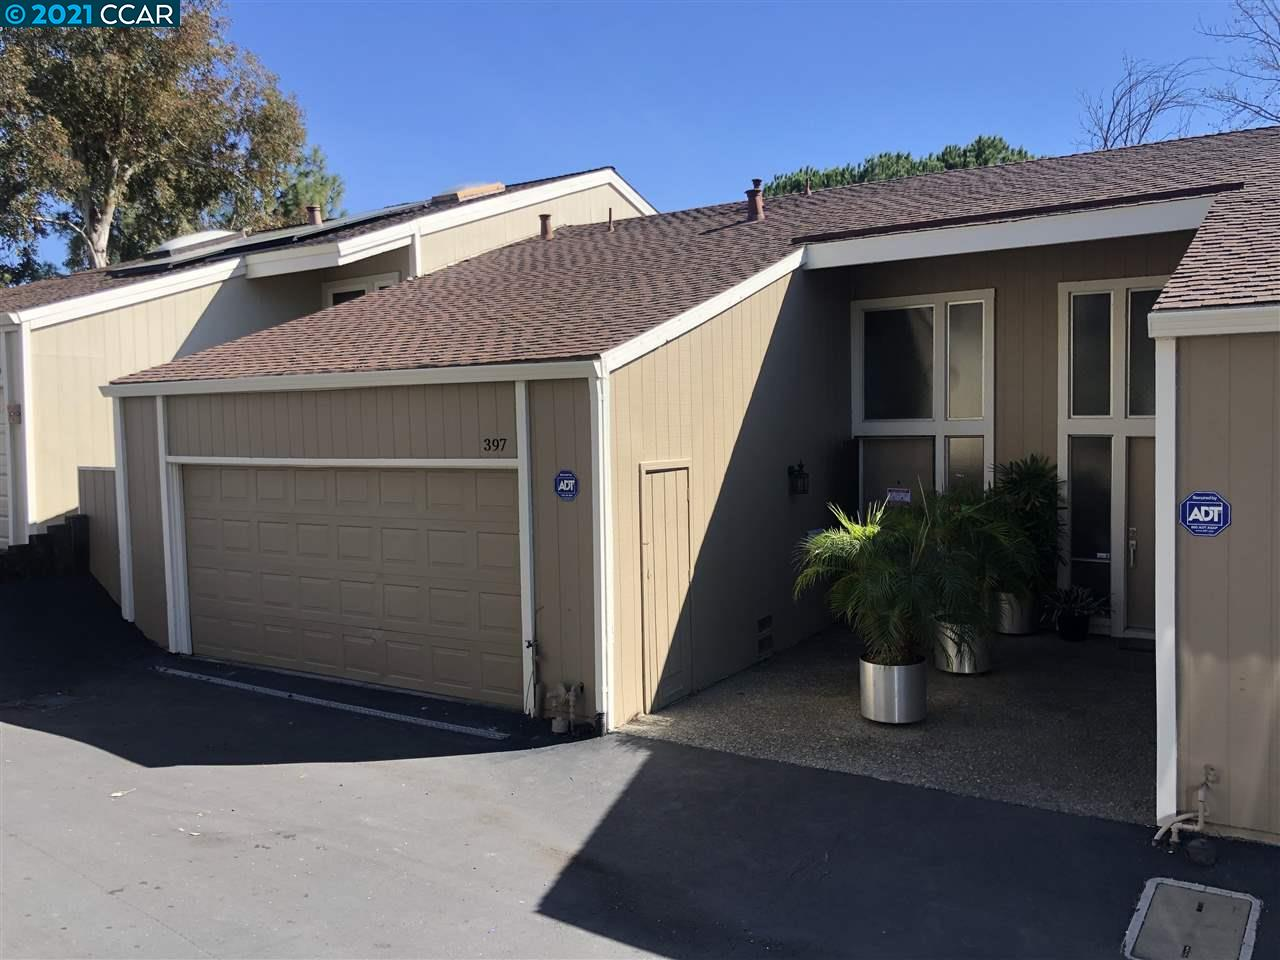 Lots of potential in this Ridgeview fixer! 2 beds plus loft area, could be 3rd bed. Living room with fireplace, vaulted ceiling and slider to rear deck. Enjoy the community pool & tennis courts. Conveniently located to Hidden Valley and Hidden Lakes parks, shopping, BART, freeways, Paso Nogal Dog Park and Diablo Valley College.